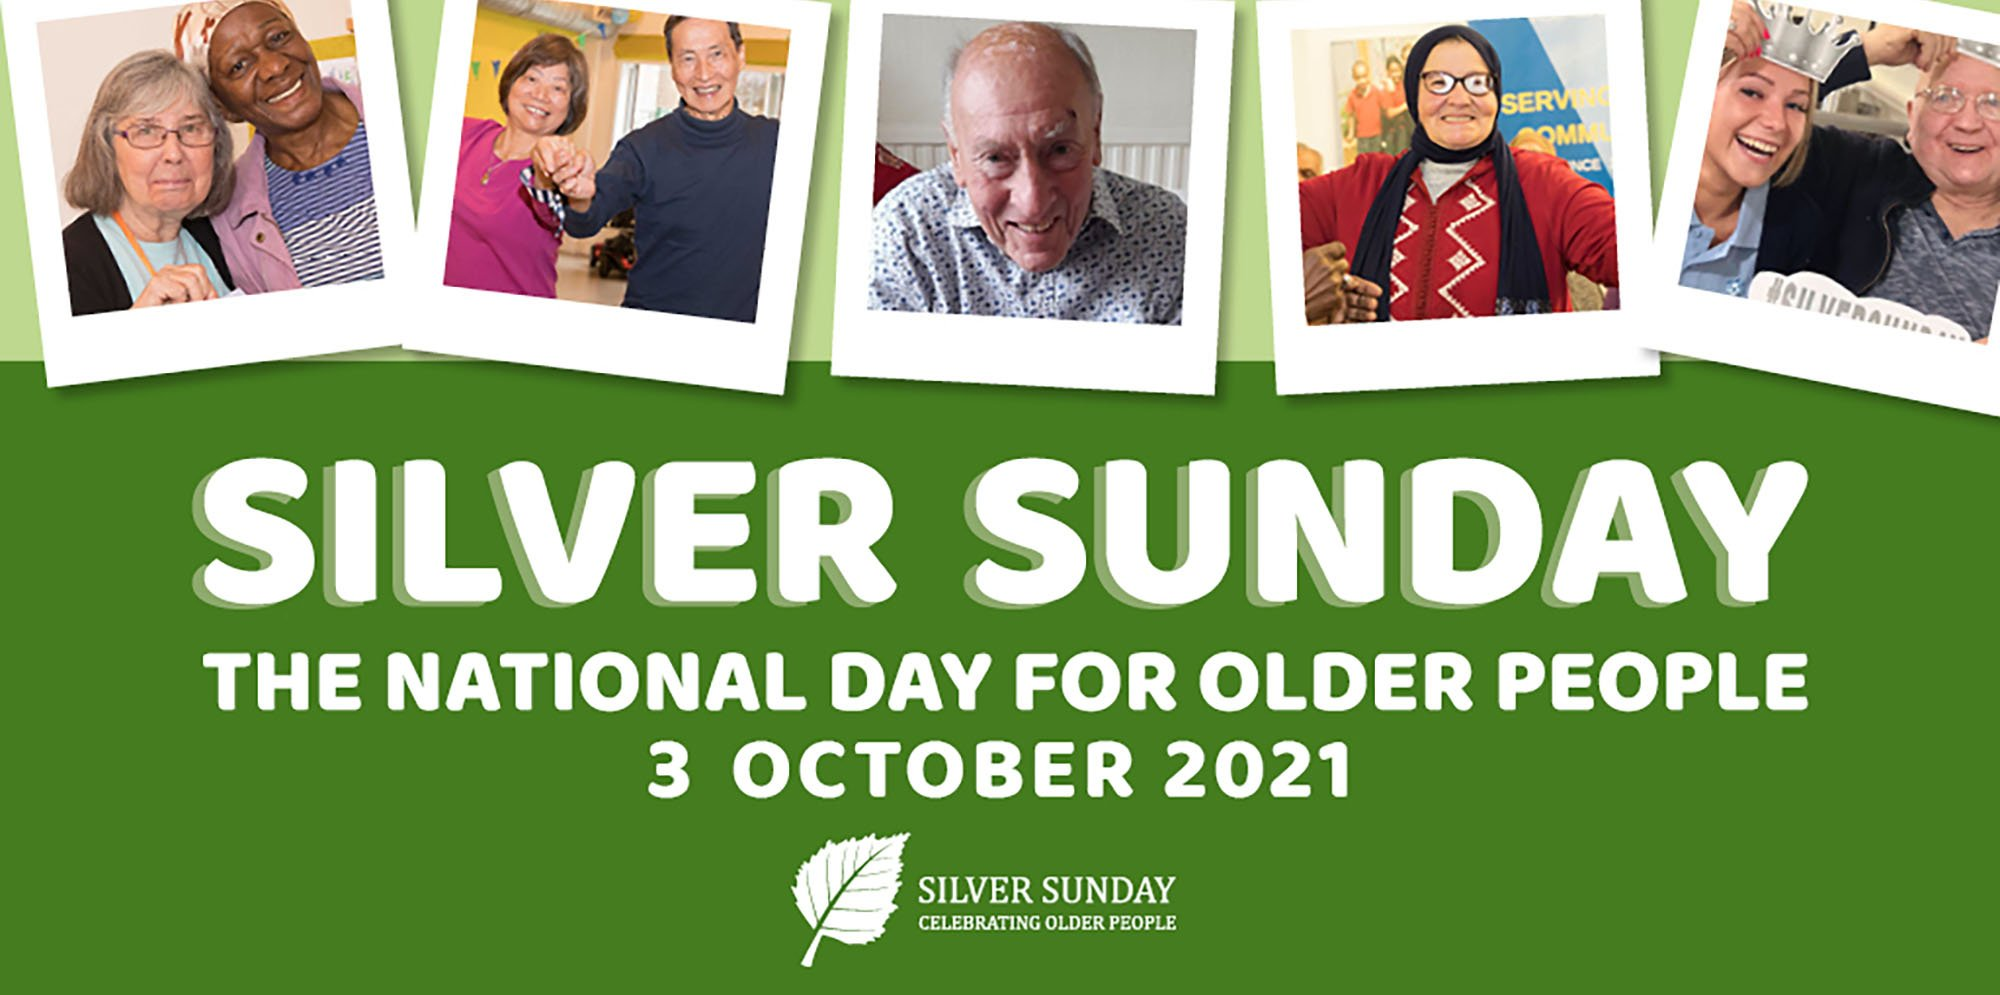 White text on a green background reads Silver Sunday, The National Day for Older People. Along the top of the image are 5 polaroid photos of older people everyone is smiling